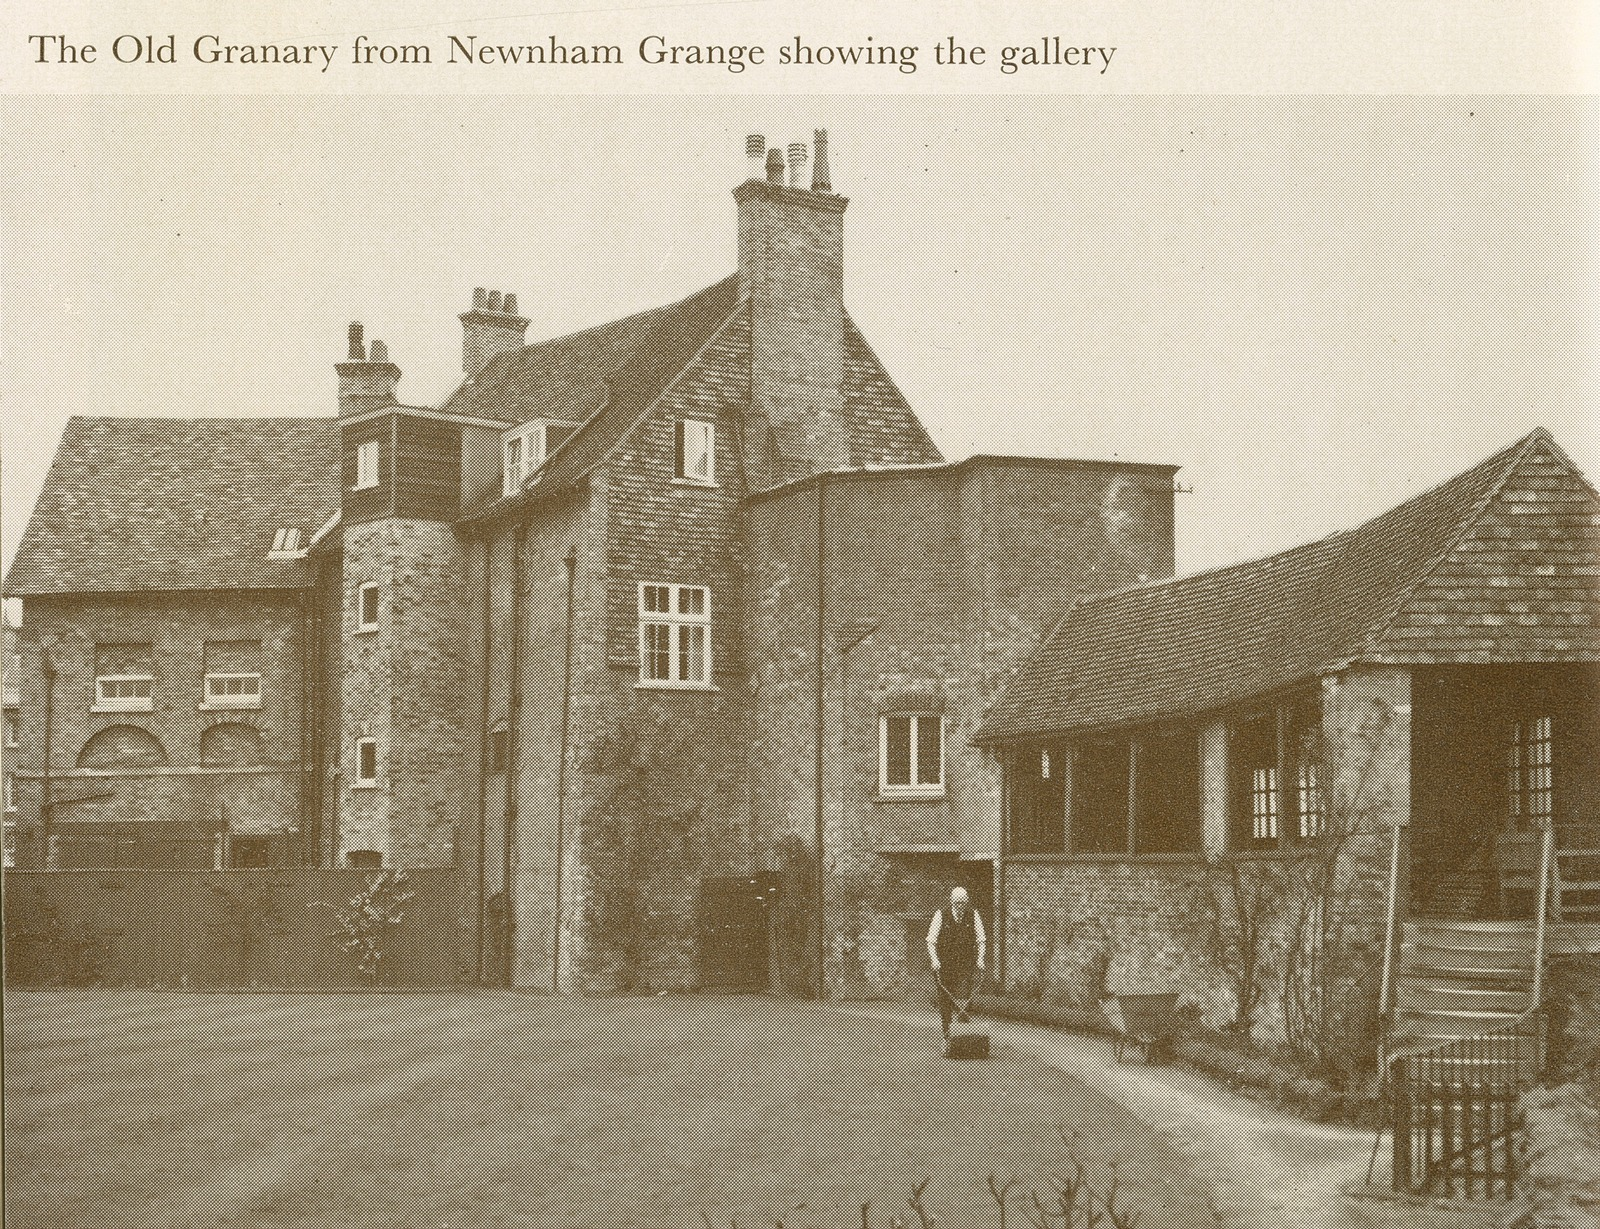 Greyscale image of brick or stone granary from the Grange, with person doing lawn work